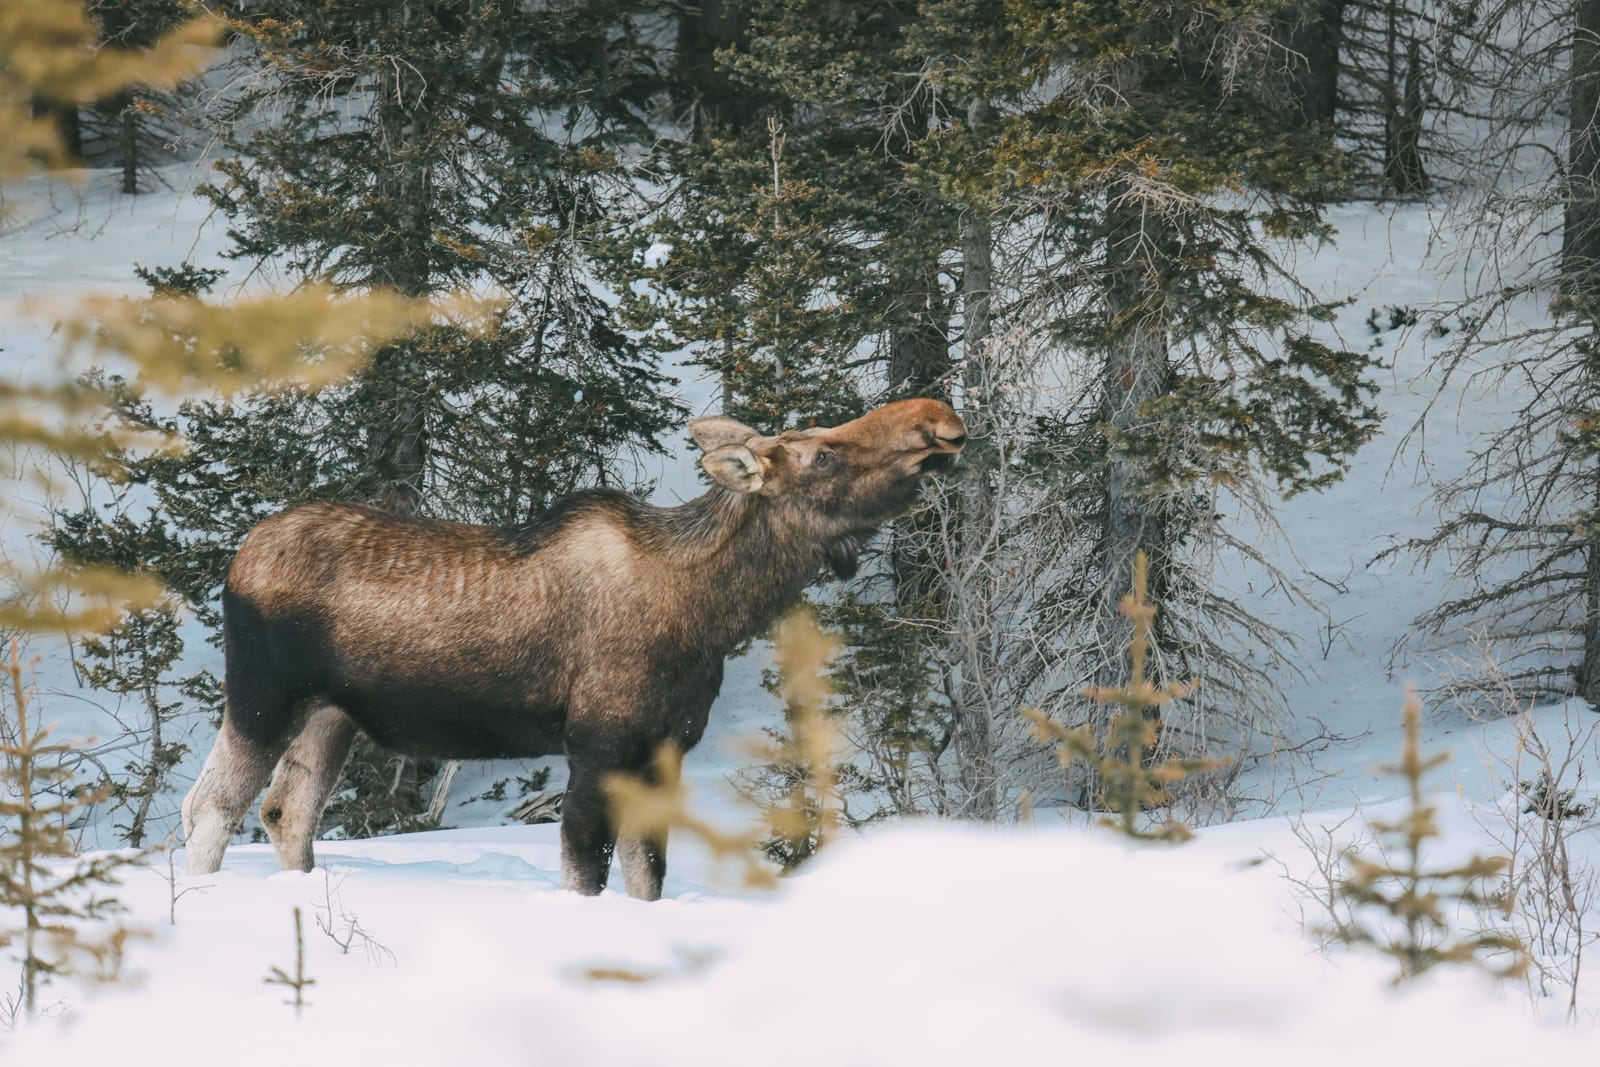 Finding Wild Moose And Skiing In Sunshine Village... In Banff, Canada (4)